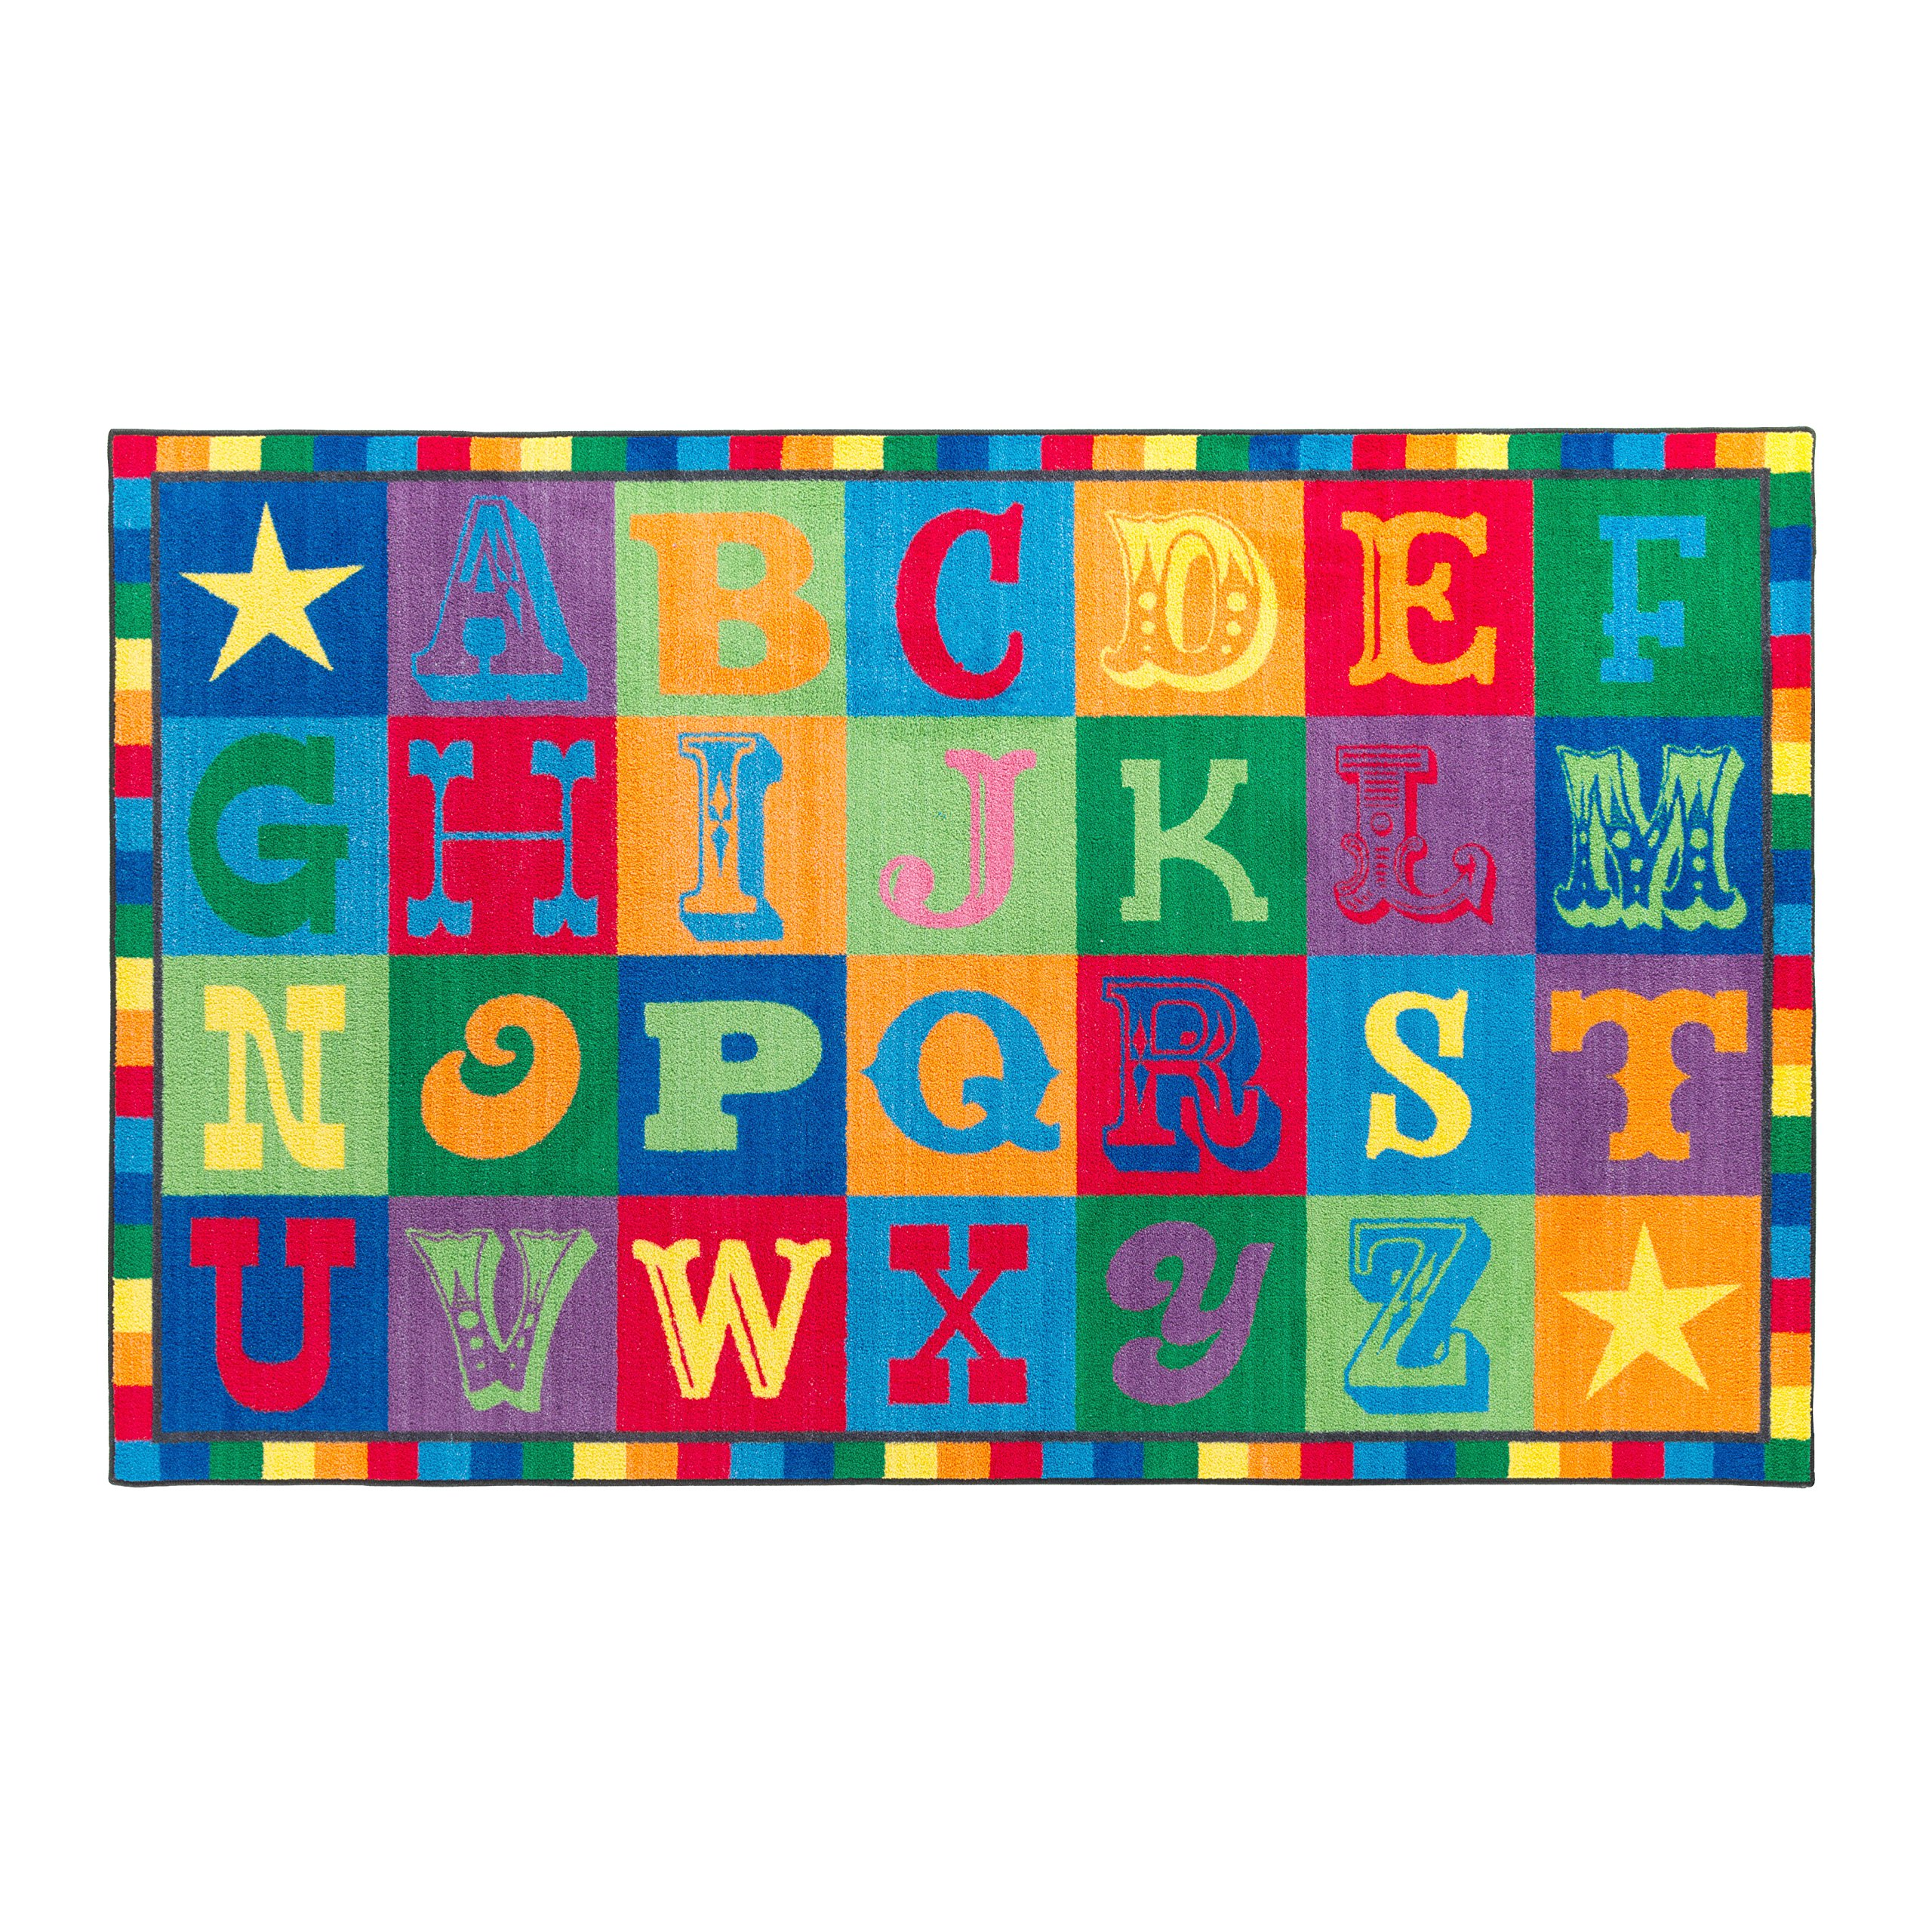 Flagship Carpets CE191-28W Early Blocks Rug, All 26 Letters Provides a Unique Learning Spot for Everyone, Children's Classroom Educational Carpet, 5' x 8', 60'' Length, 96'' Width, Multi-Color